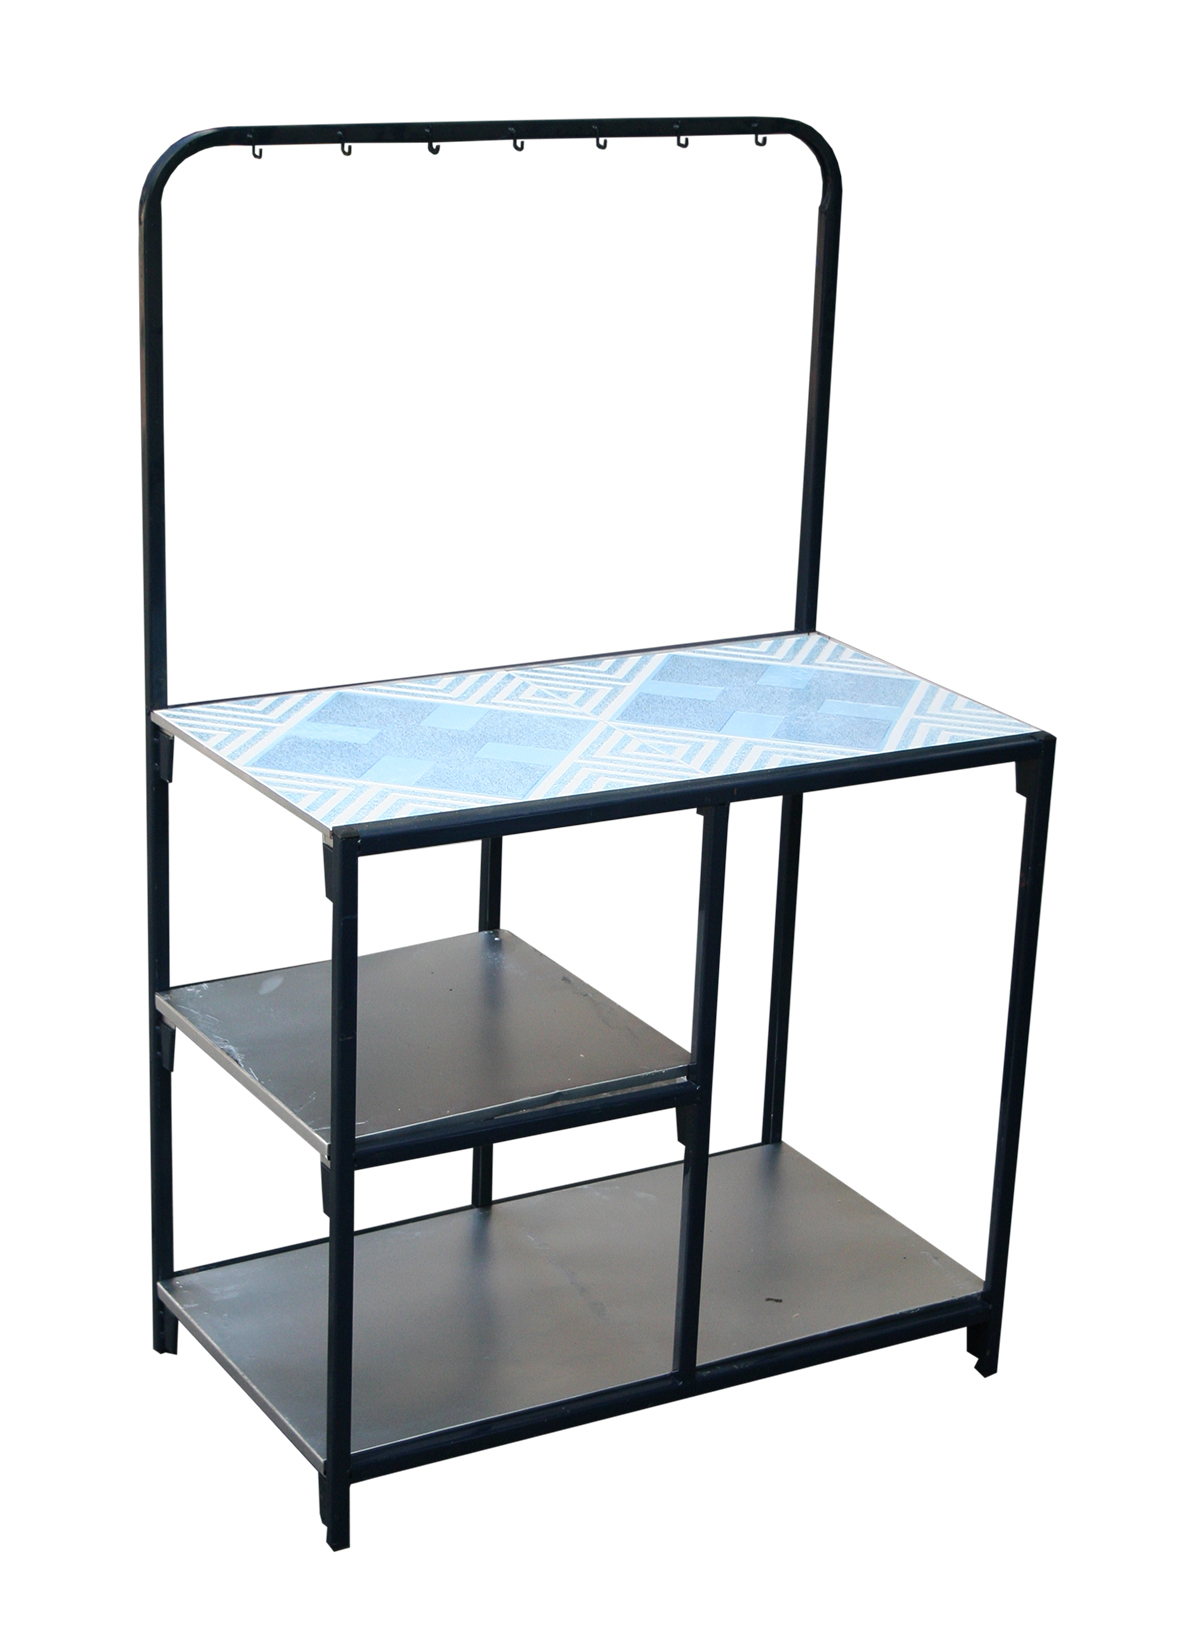 kitchen side table kitchen side table dragon kitchen side table tiles lazada ph Kitchen ideas